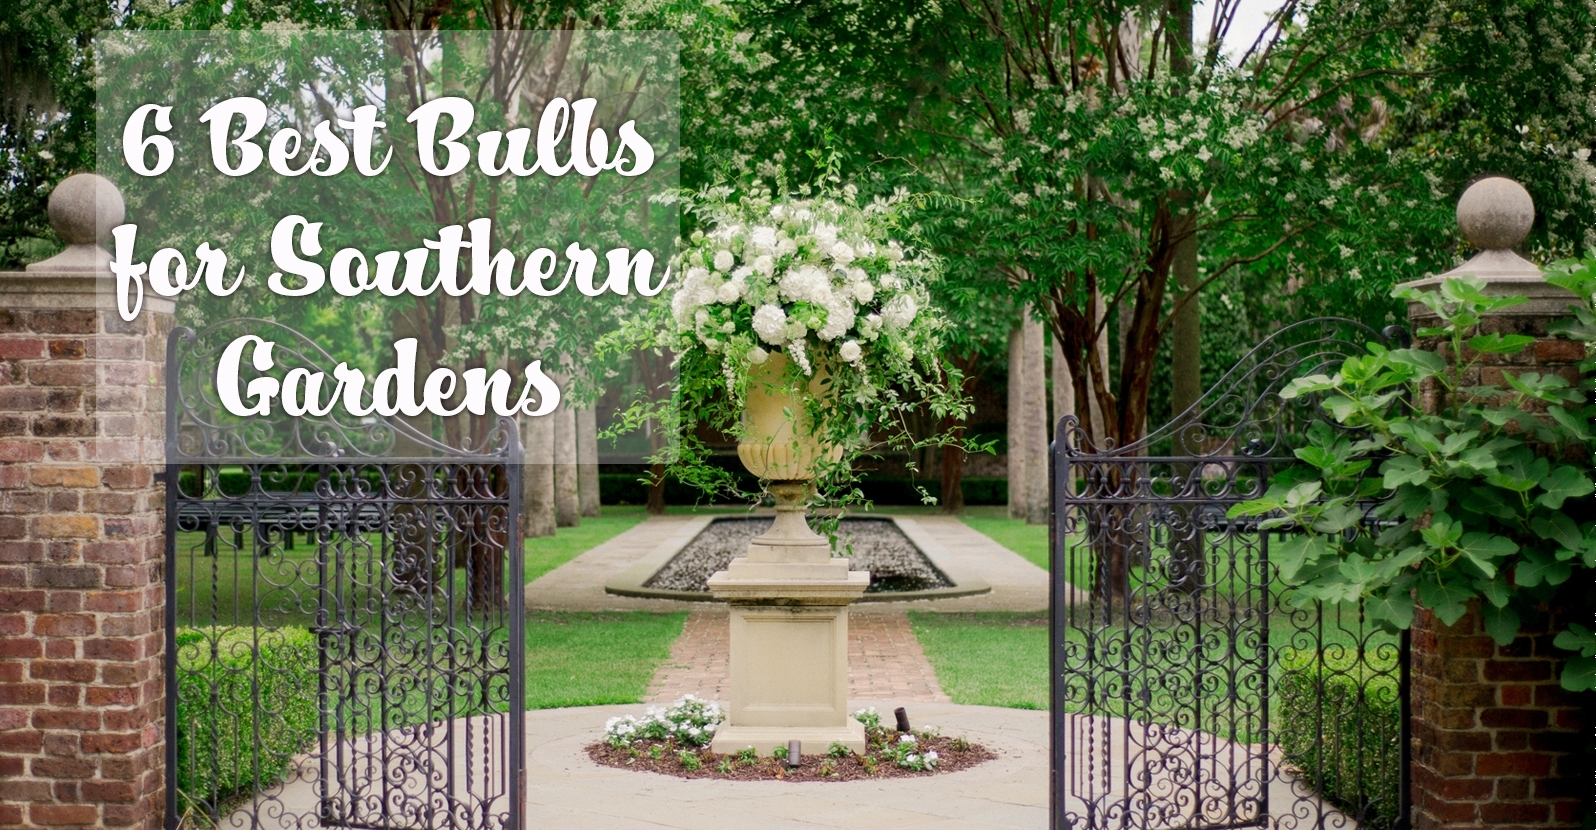 6 Best Bulbs for Southern Gardens (Zones 7-10)